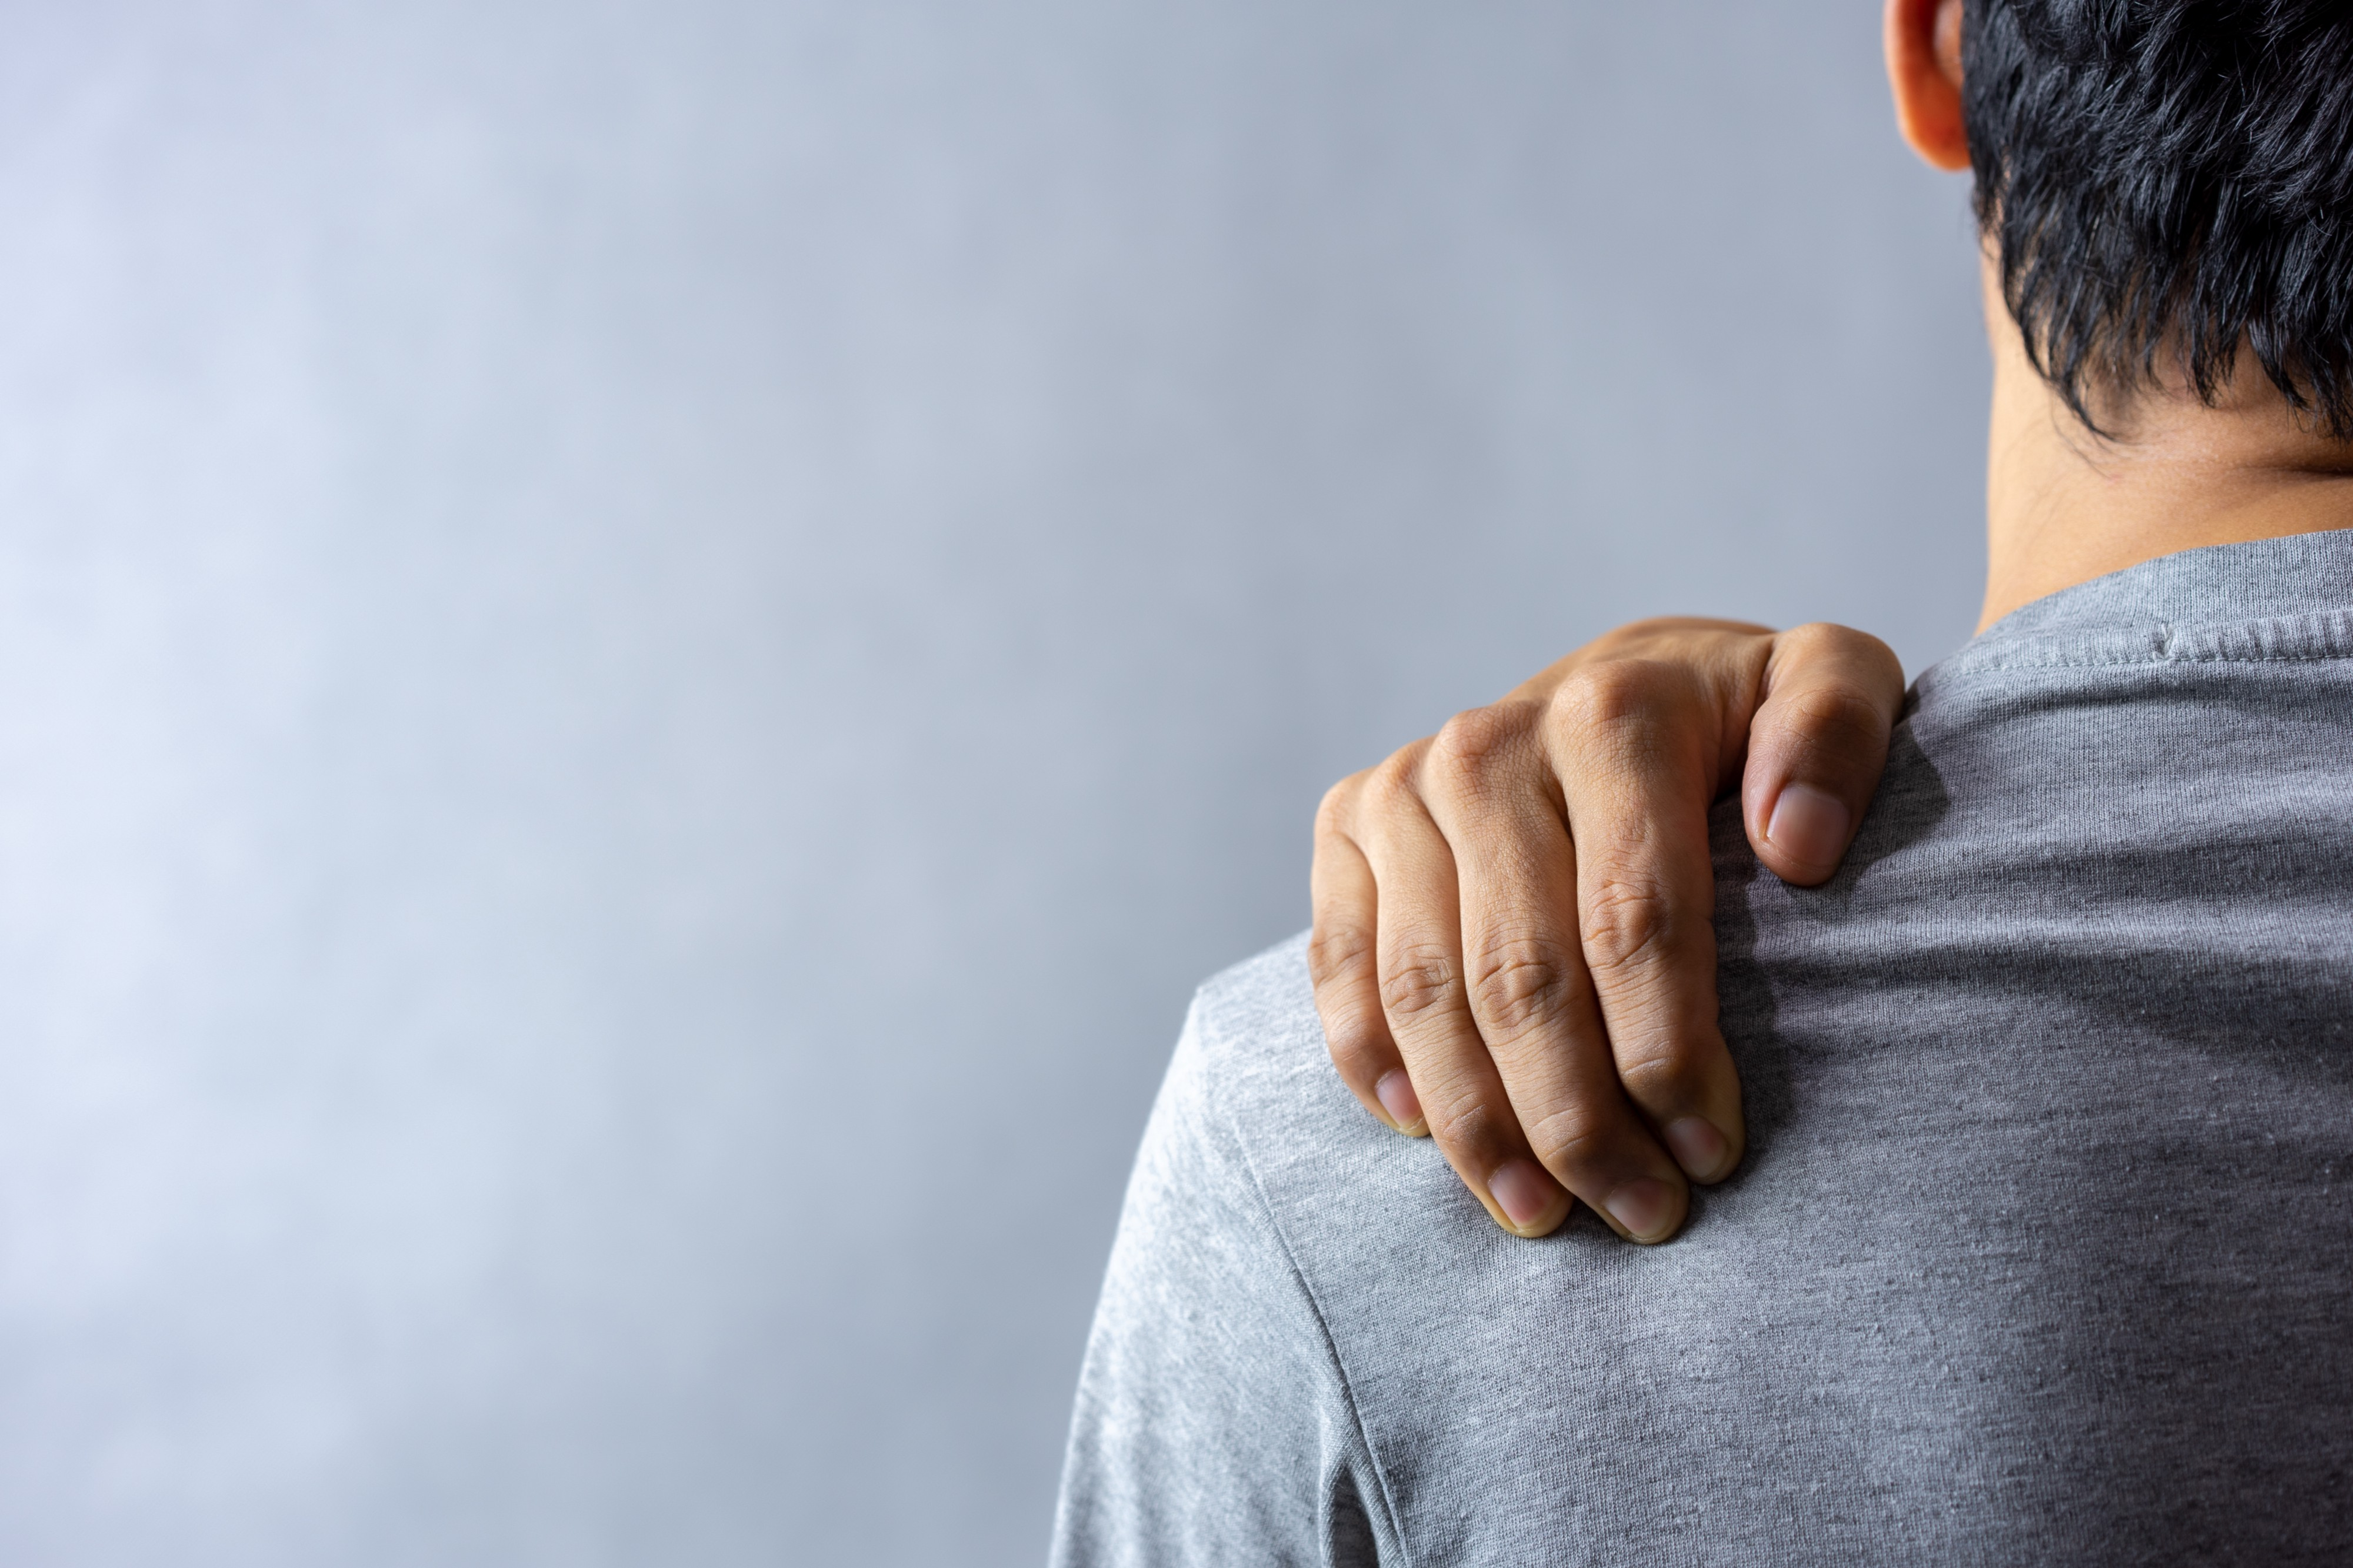 A person holding their left shoulder indicating that it is paining. Stress leads to aches and pains